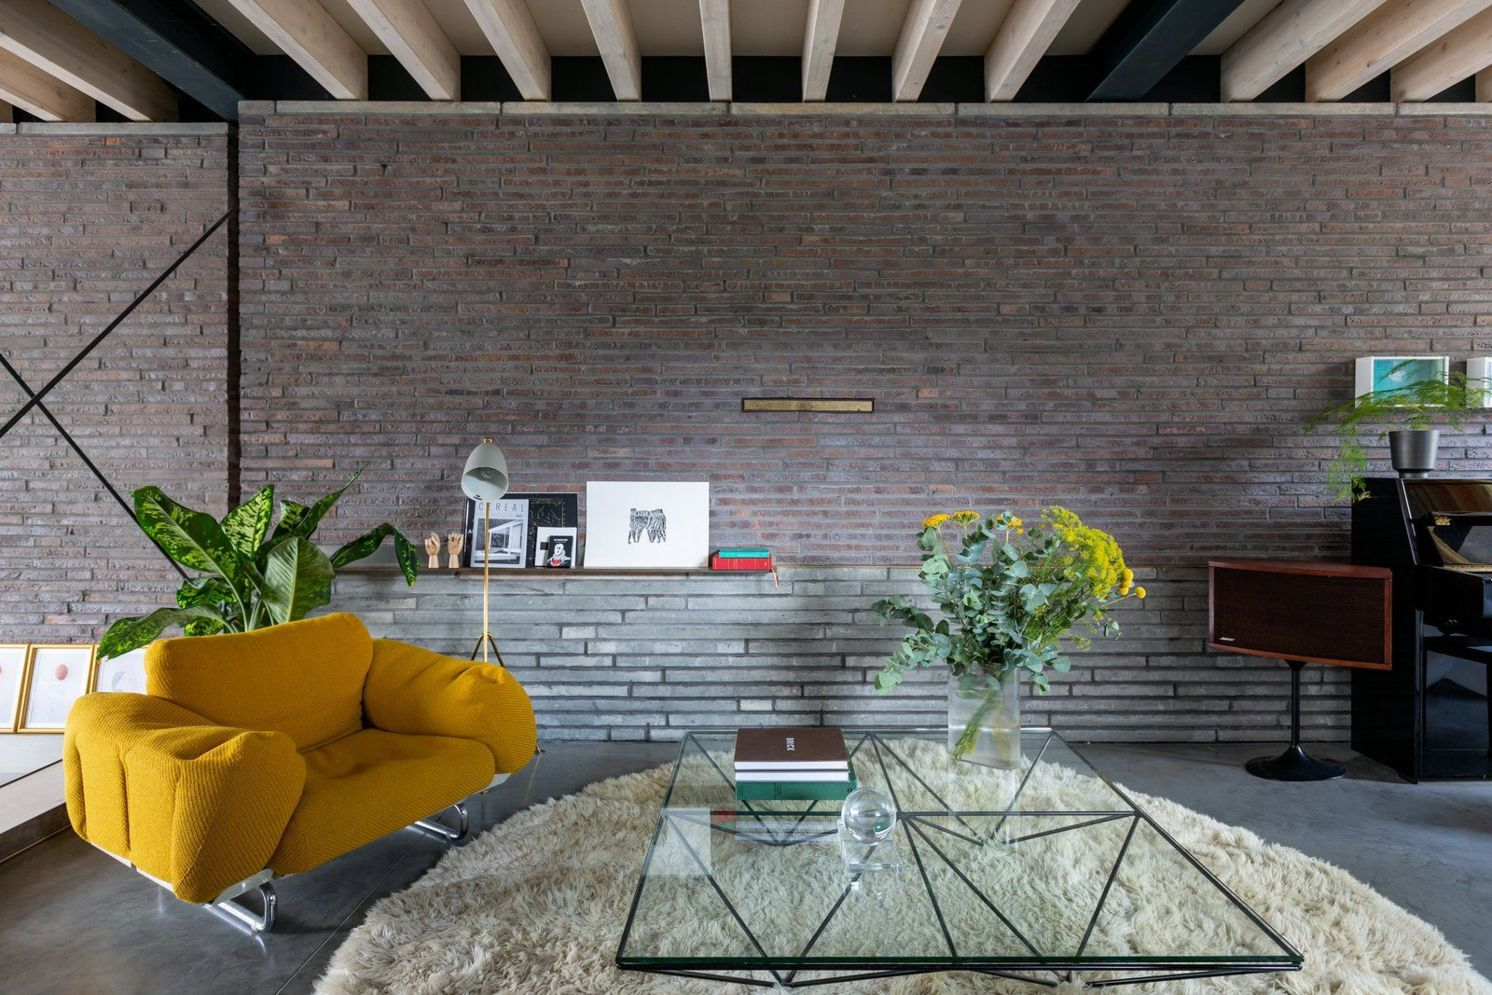 Wonderful interior statement brick wall improving interior display with modern rustic combination Image 33